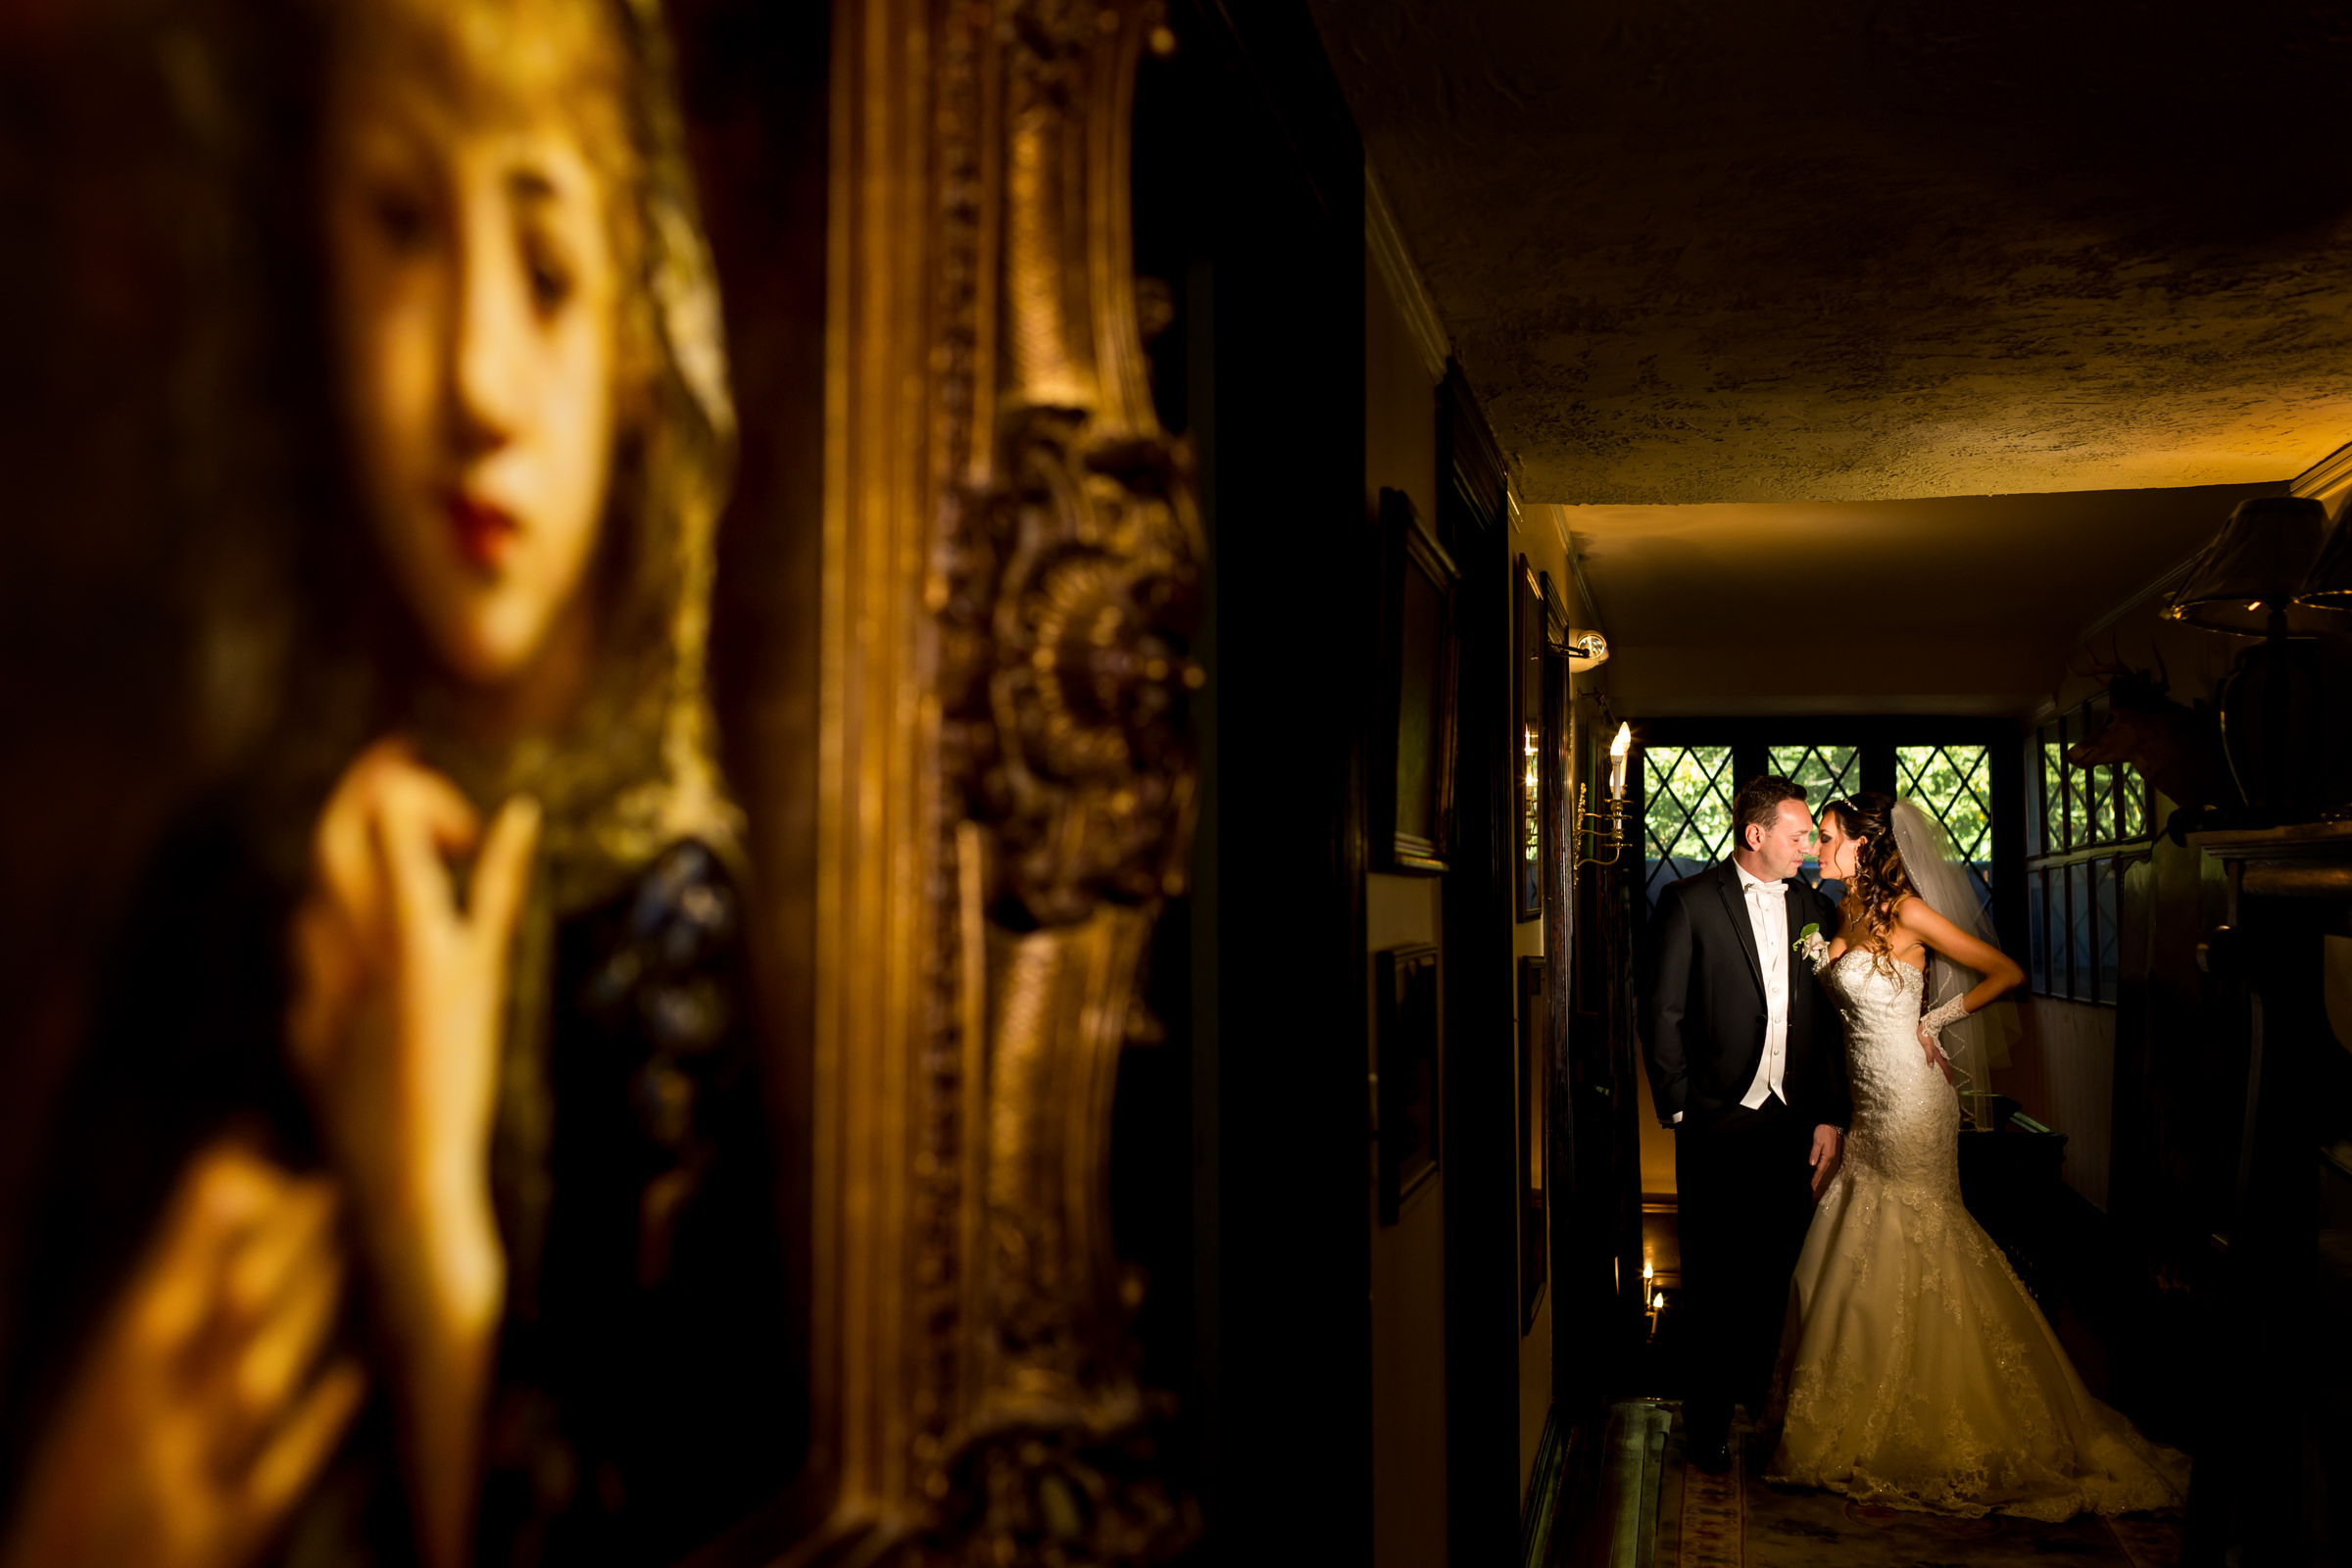 Dramatic light couple  portrait against paintings in gallery - photo by Procopio Photography